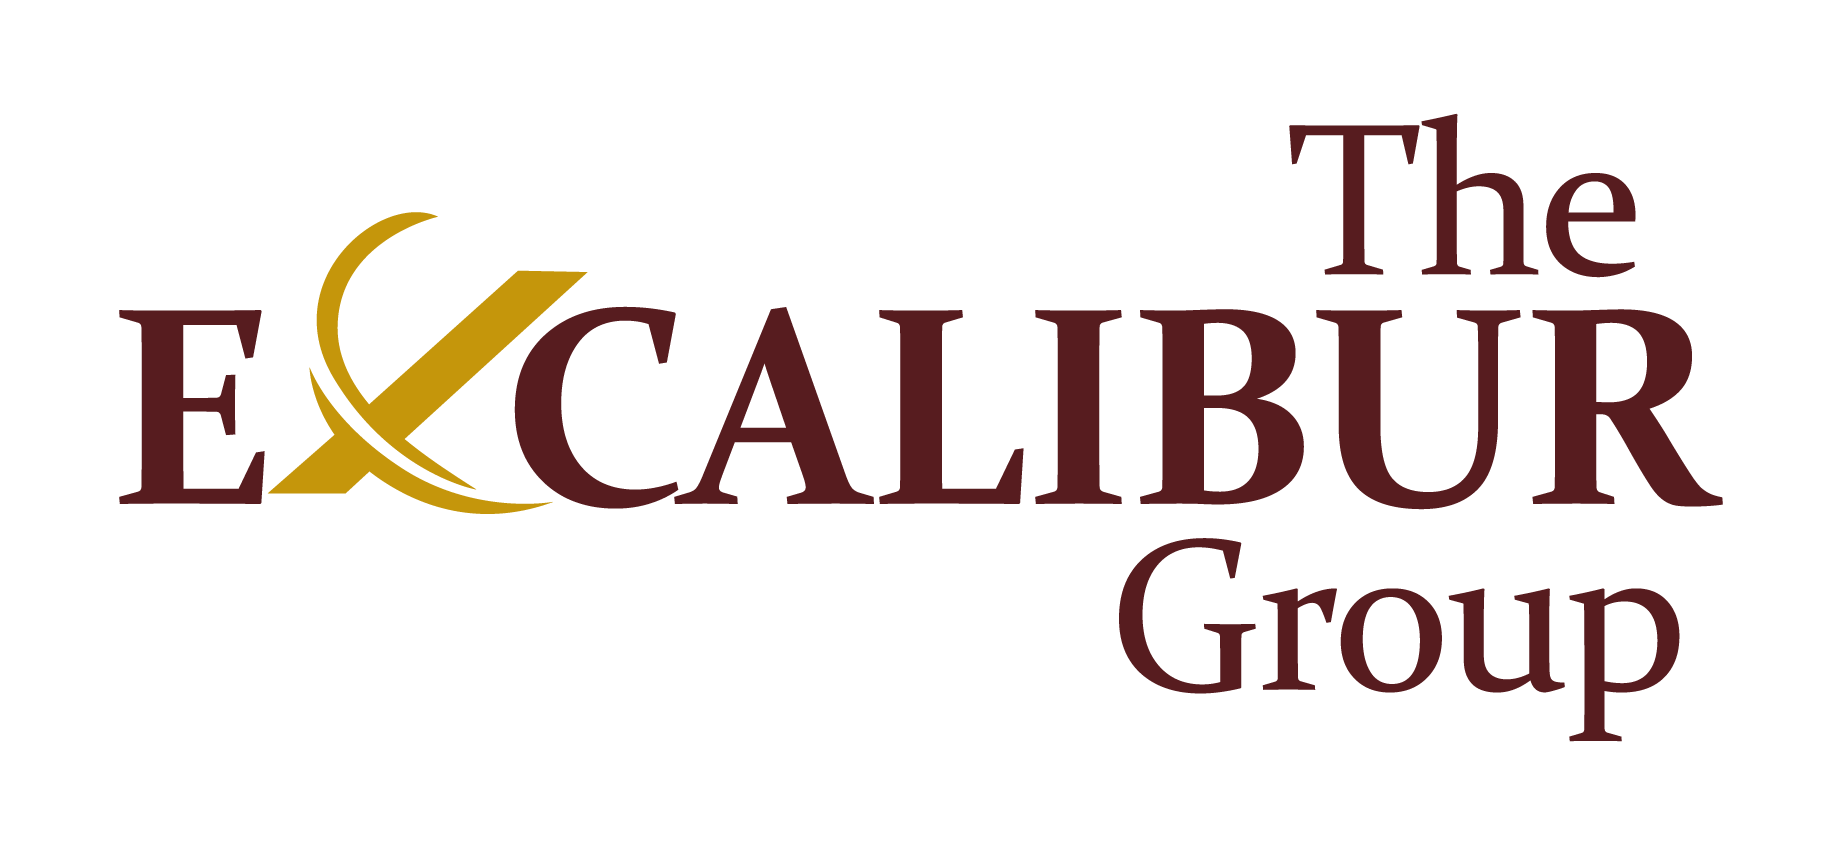 The Excalibur Group